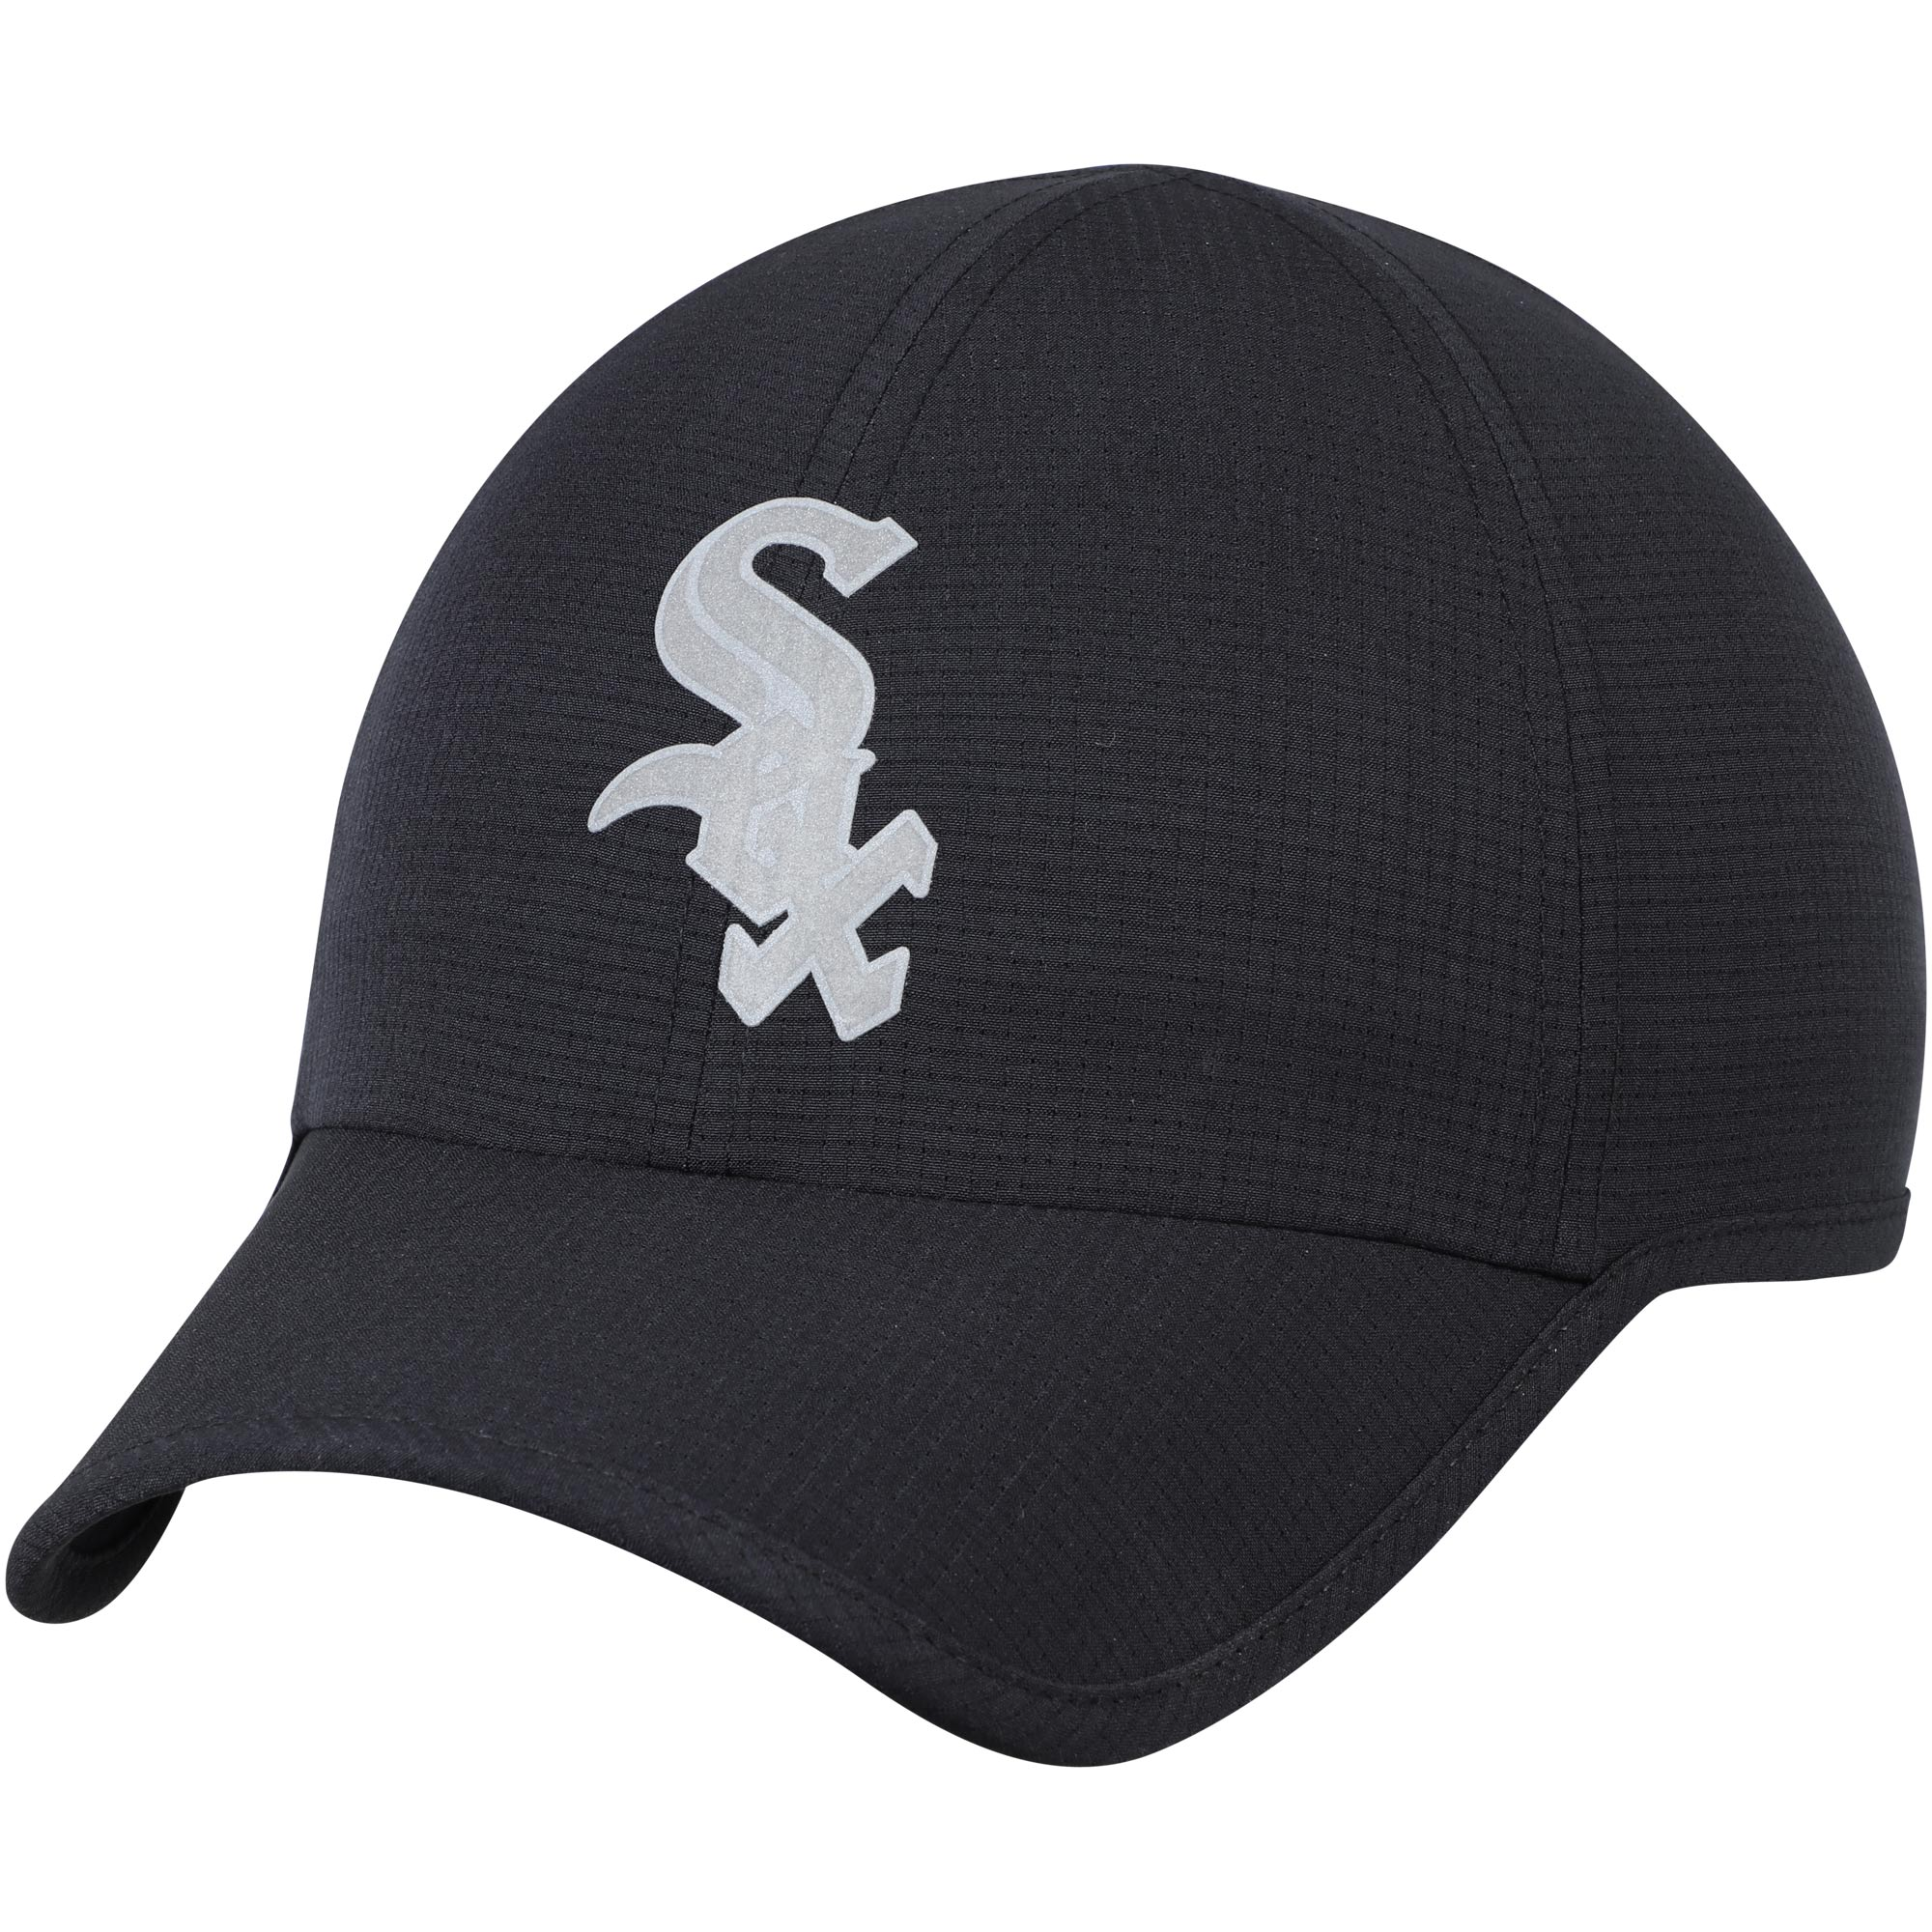 Chicago White Sox Under Armour MLB Shadow Airvent Adjustable Hat - Black - OSFA